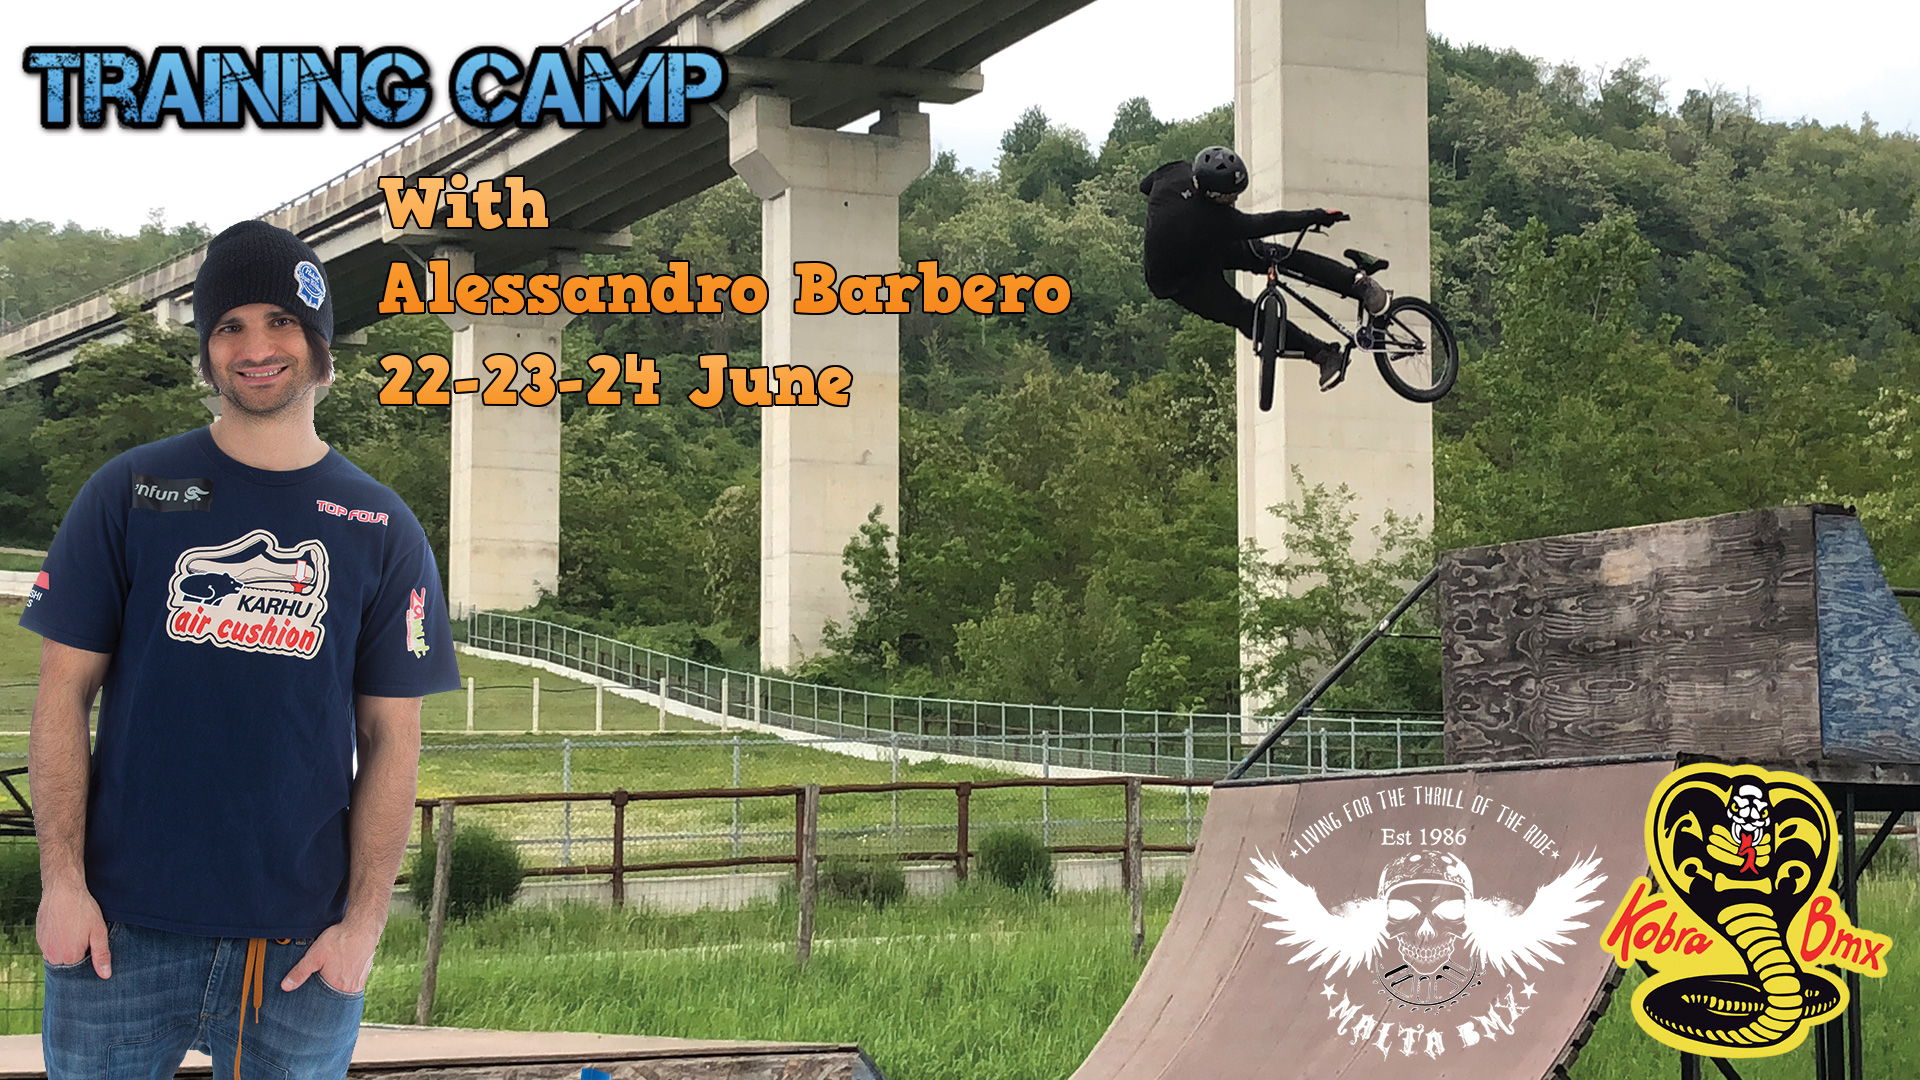 Training Camp with Alessandro Barbero 22-24 June